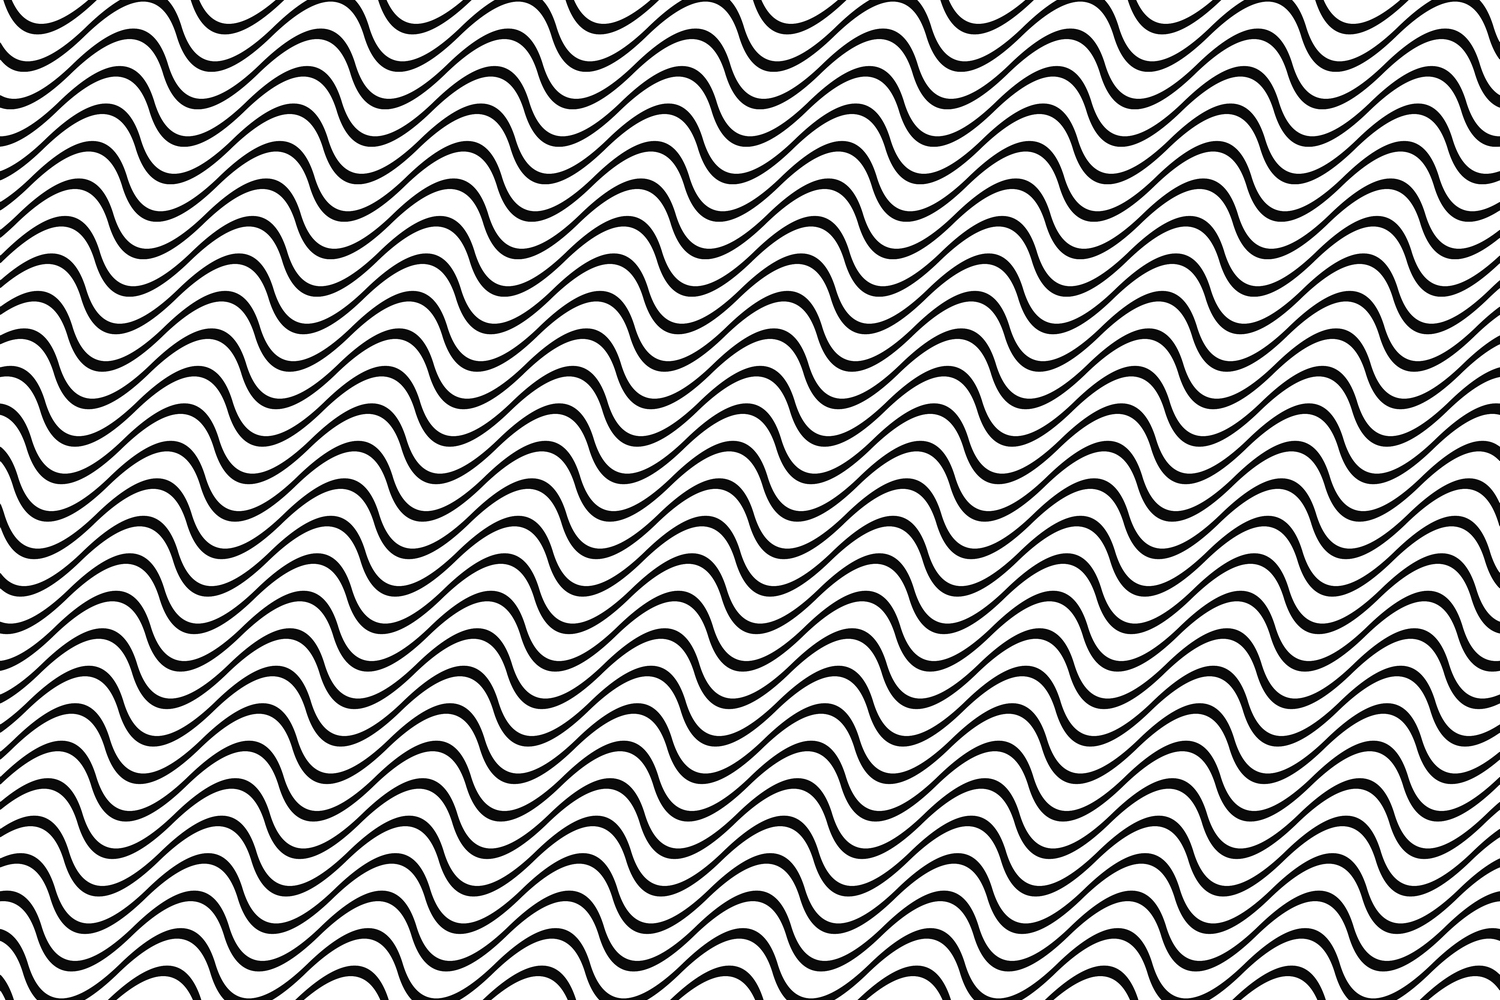 75 Monochrome Geometrical Patterns AI, EPS, JPG 5000x5000 example image 8